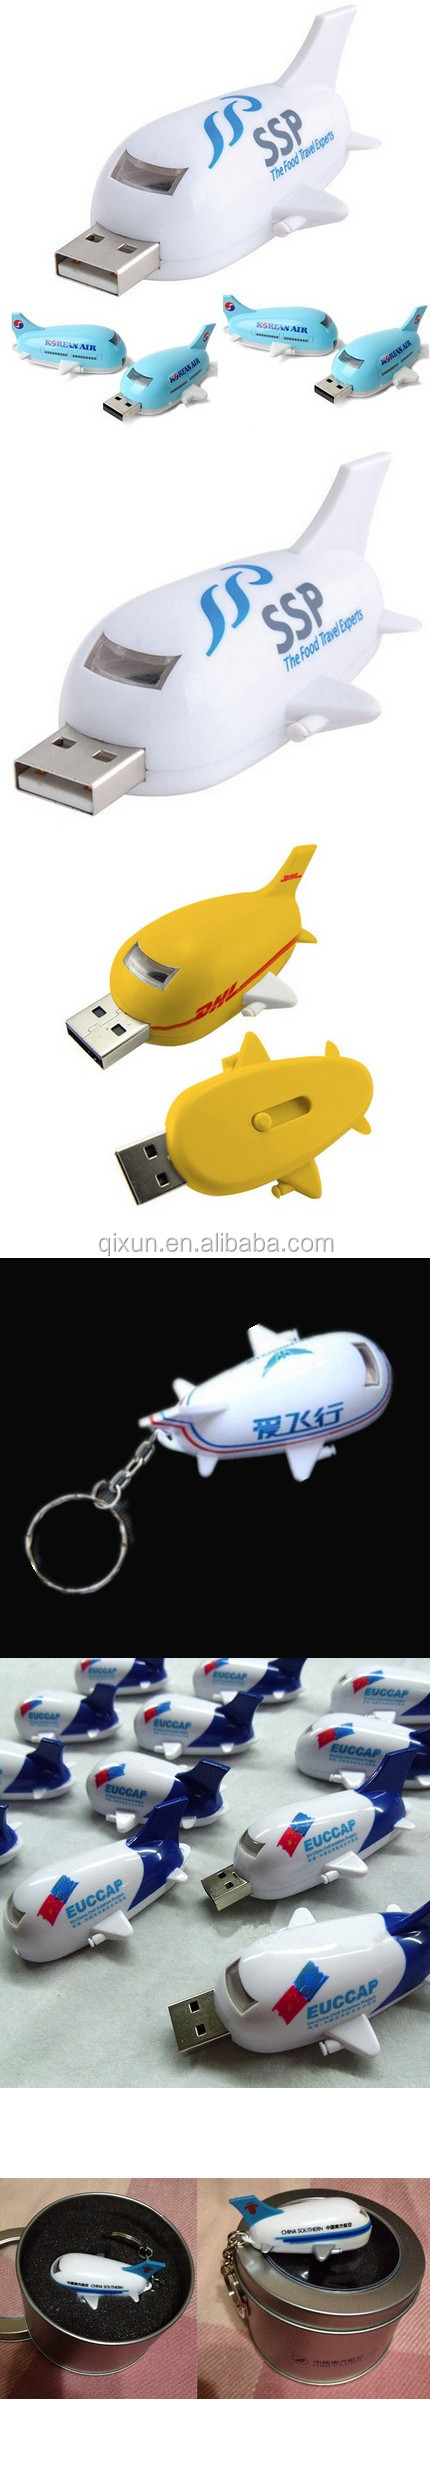 assurance order paypal accept bulk 4gb usb flash drive, plastic airplane usb flash drive bulk cheap